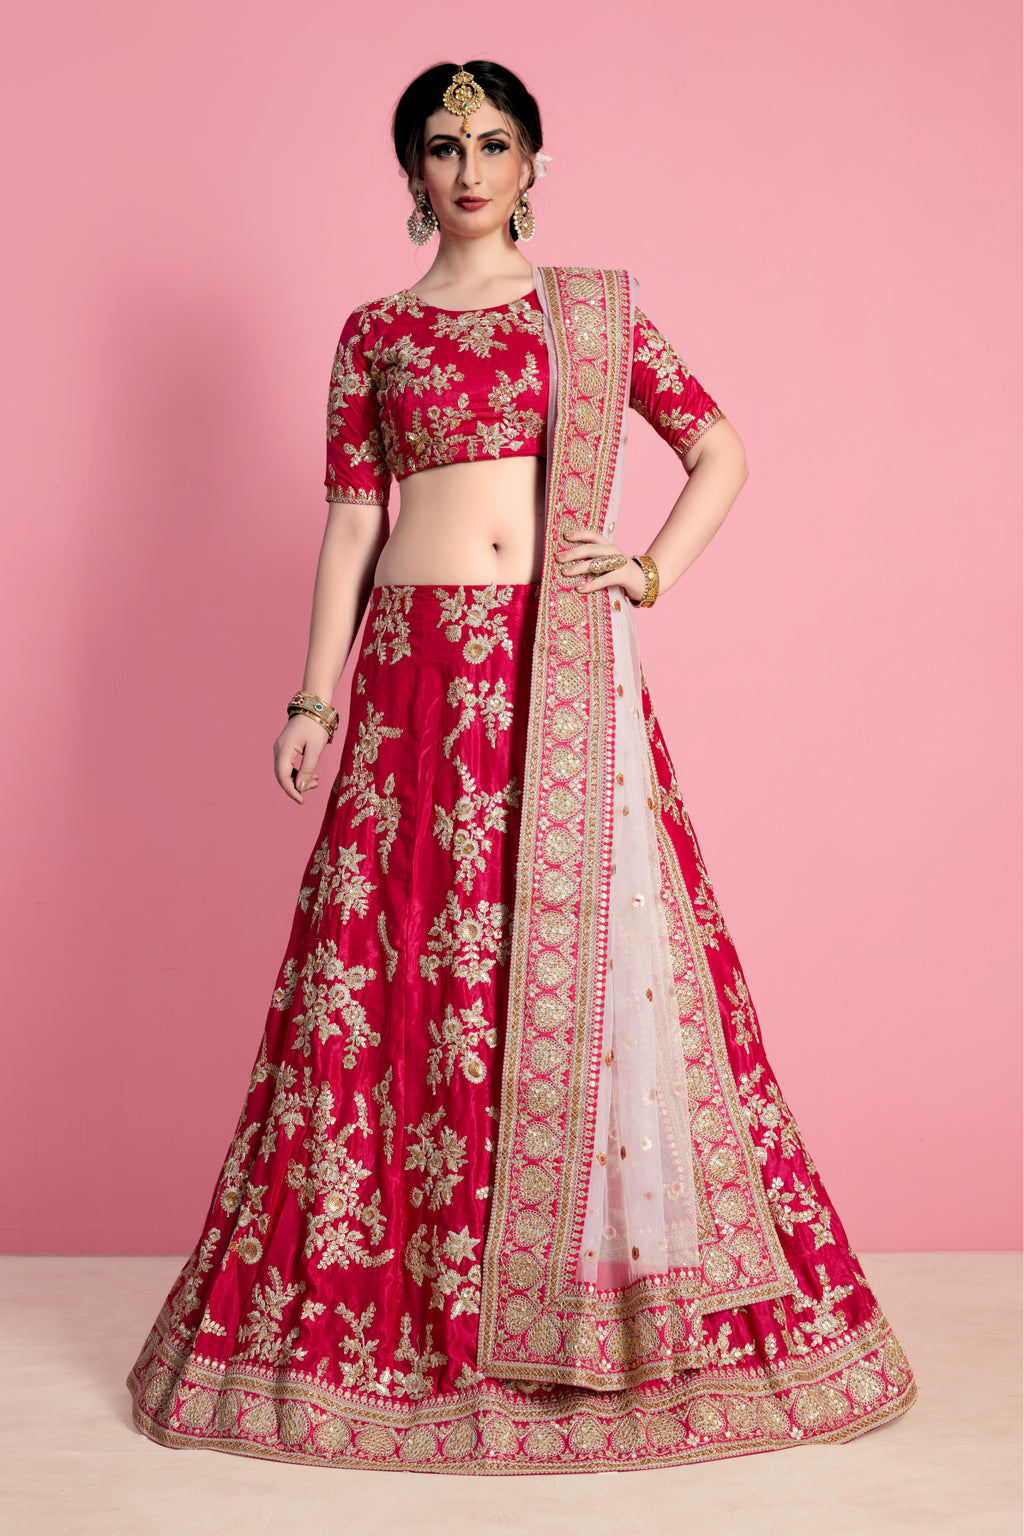 Pink Velvet Silk Beautiful Wedding Wear Indian Lehenga Choli